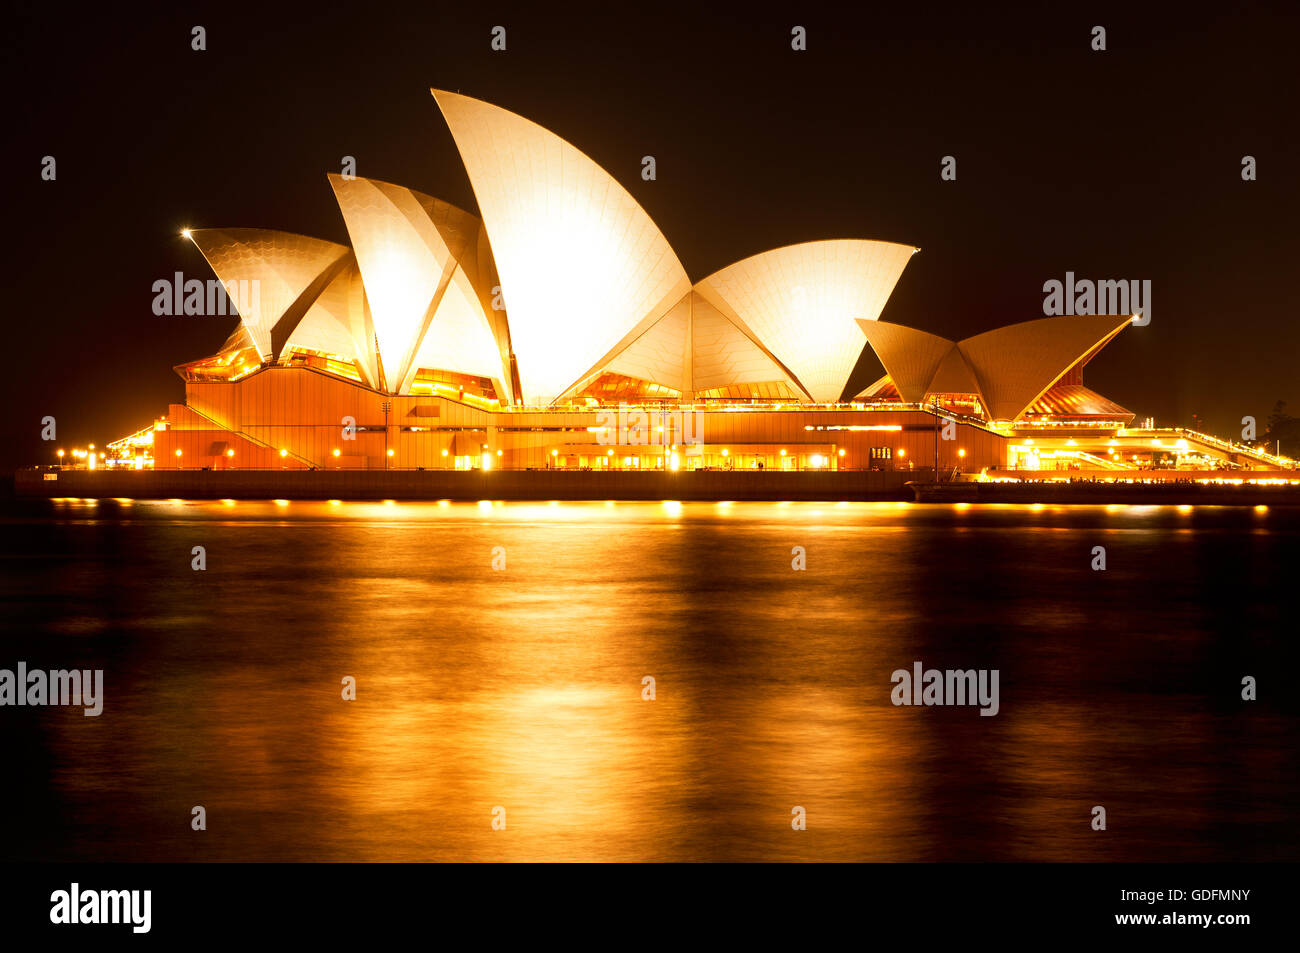 Illuminated Sydney Opera House reflects in the water of the harbour. - Stock Image